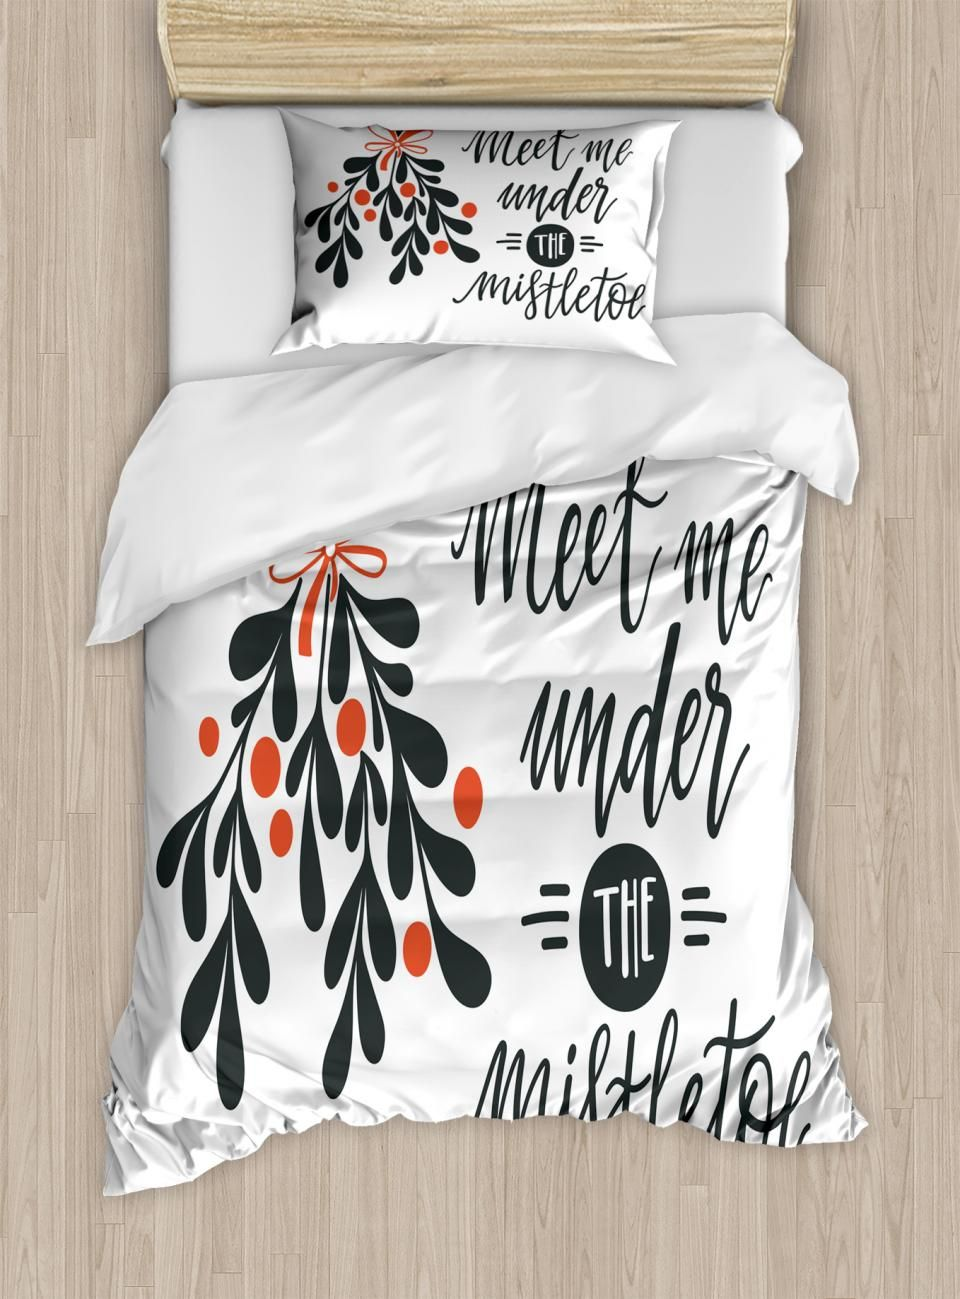 Details About Inspirational Duvet Cover Set Twin Queen King Sizes With Pillow Shams Bedding Duvet Cover Sets Boys Crib Bedding Sets Baby Girl Crib Bedding Sets